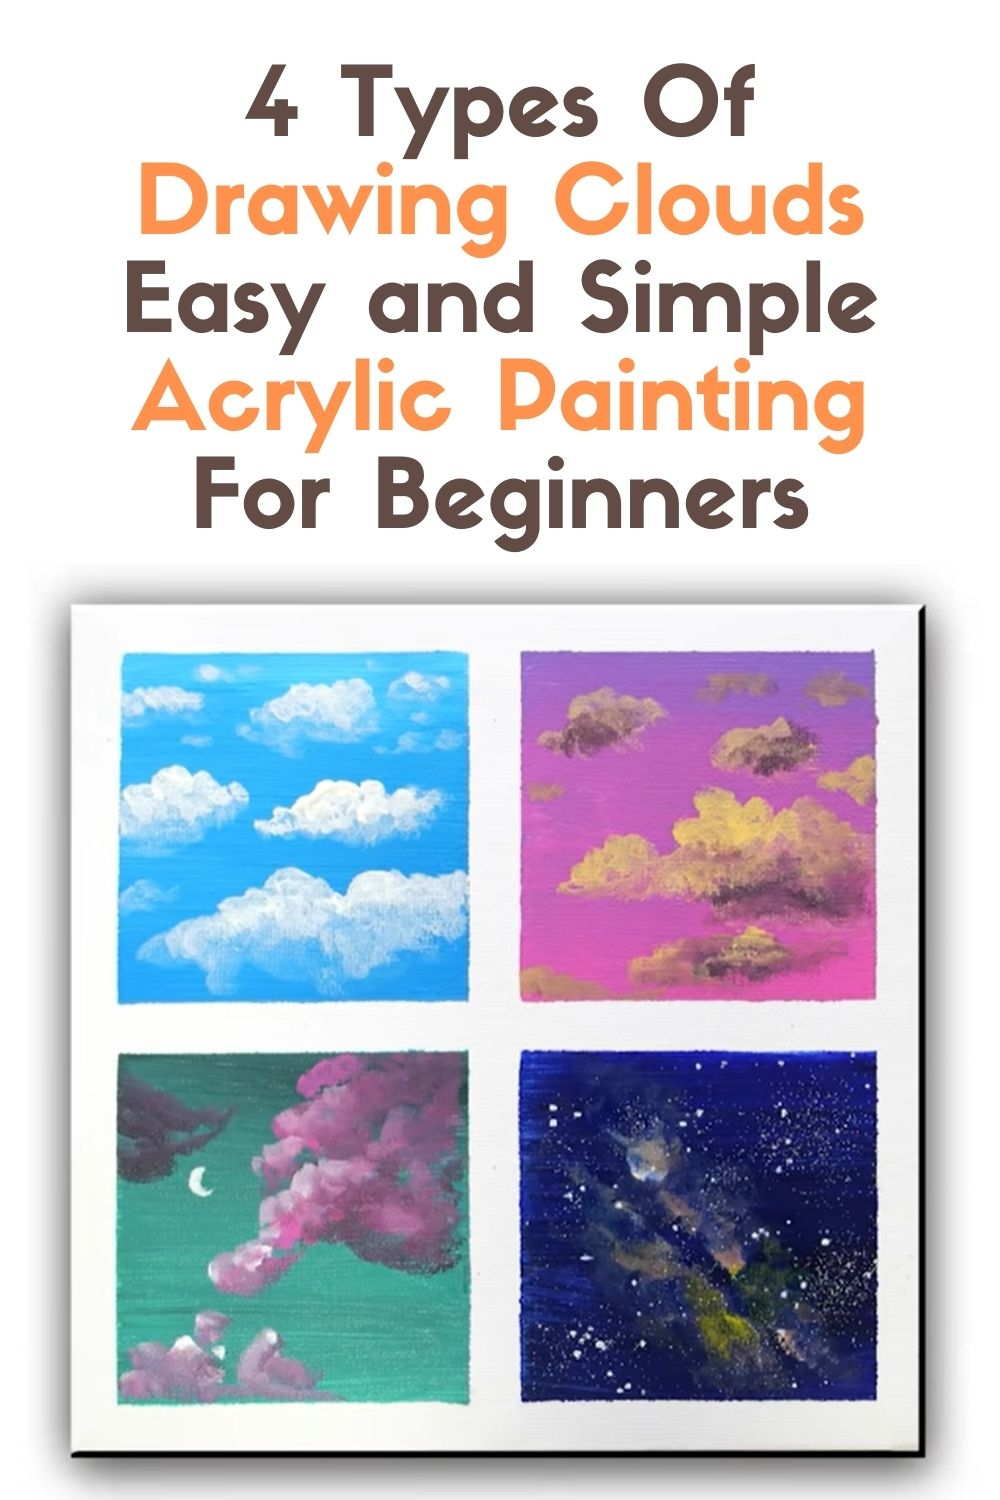 4 Types Of Drawing Clouds Easy and Simple Acrylic Painting For Beginners